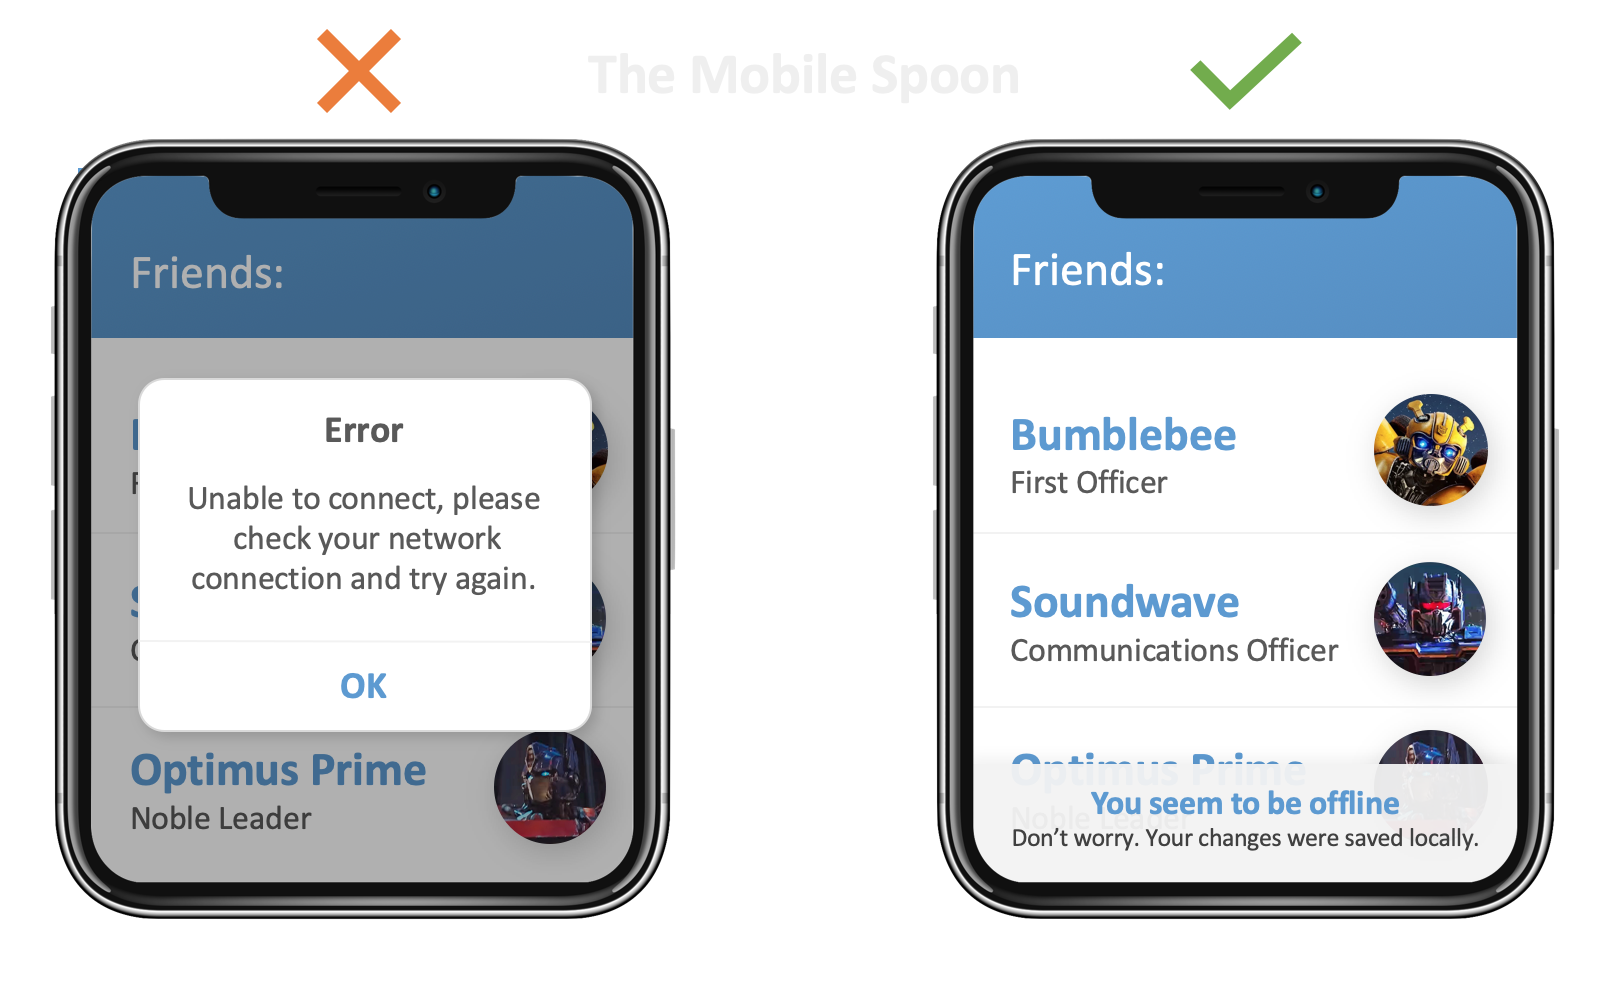 Design your app for interruptions: incoming calls, push notifications, occasional disconnections.